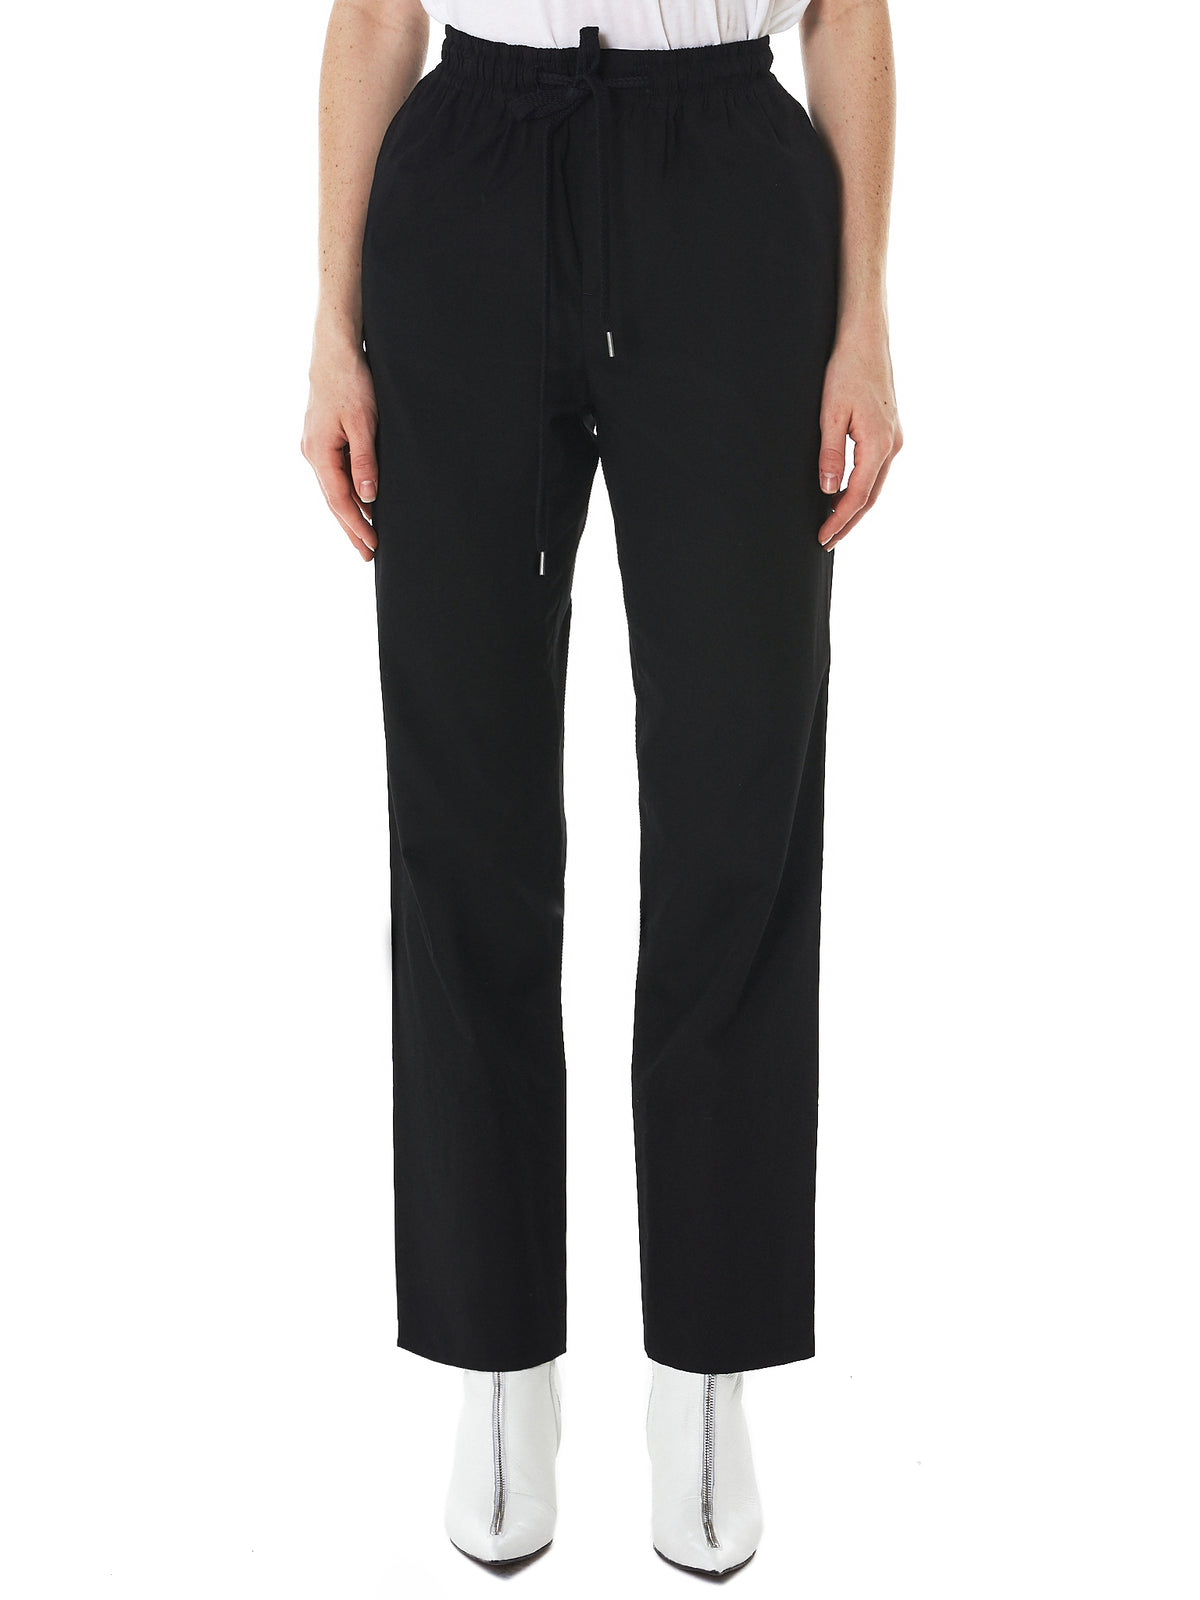 Elasticized Trousers (YW-P49-030-BLACK)